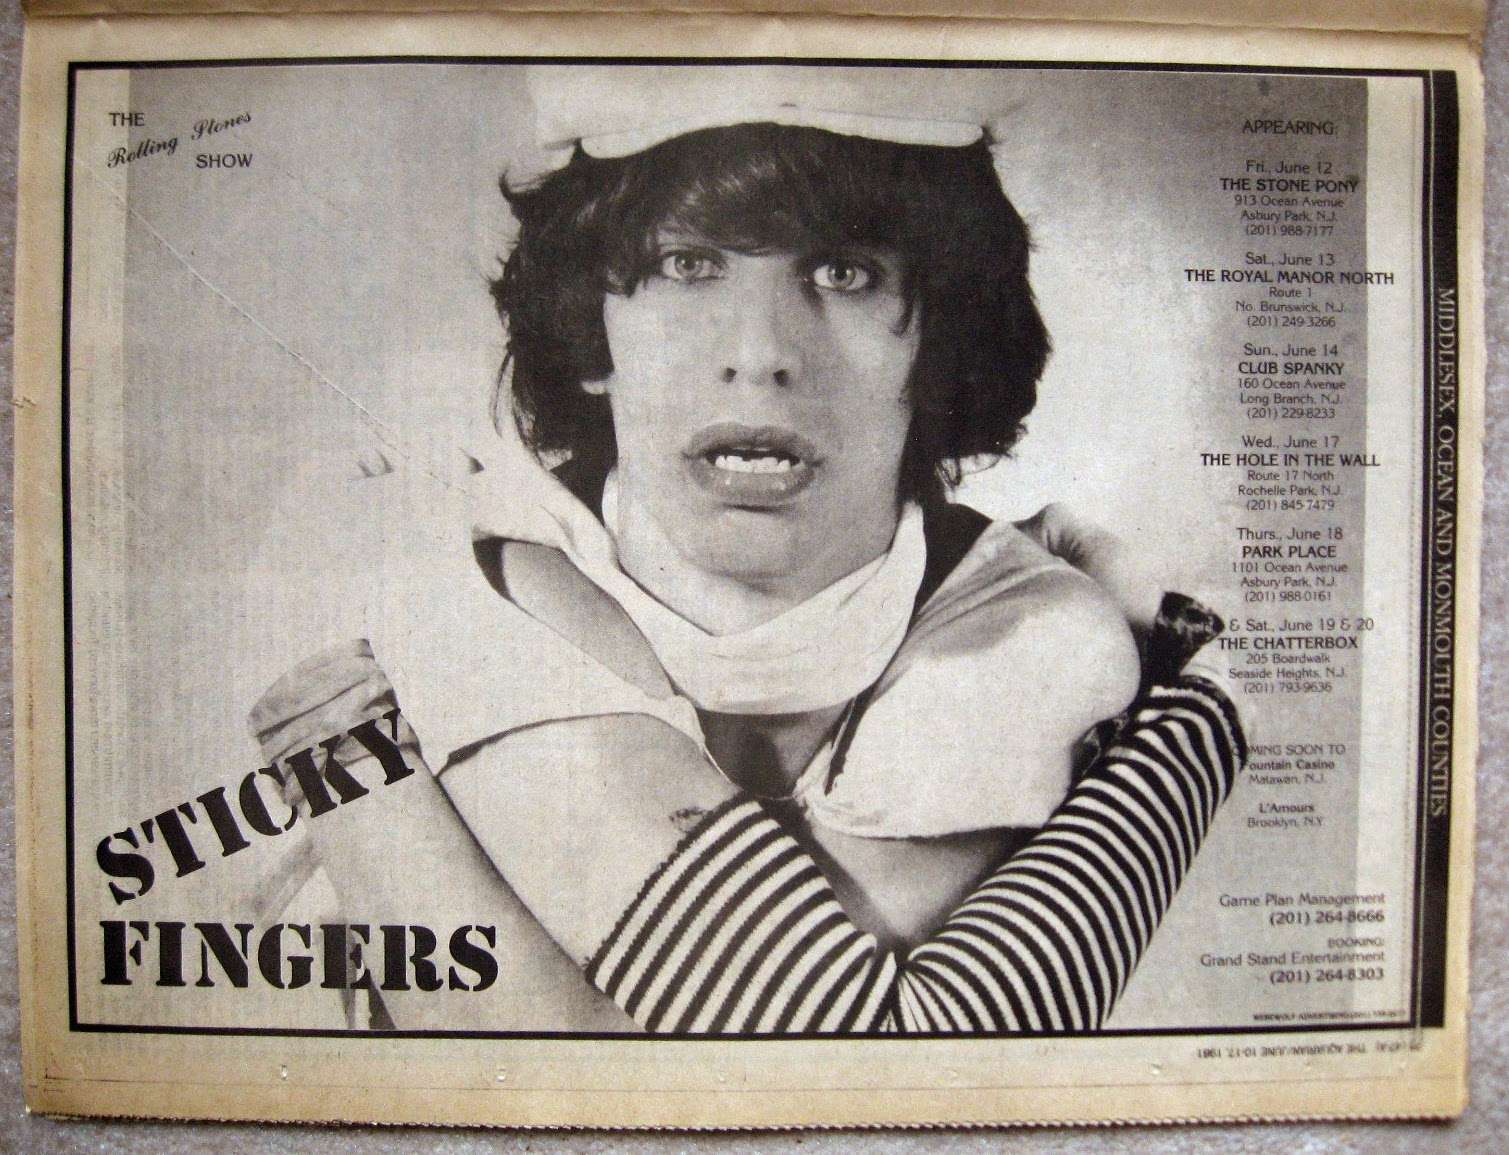 Sticky Fingers full page ad